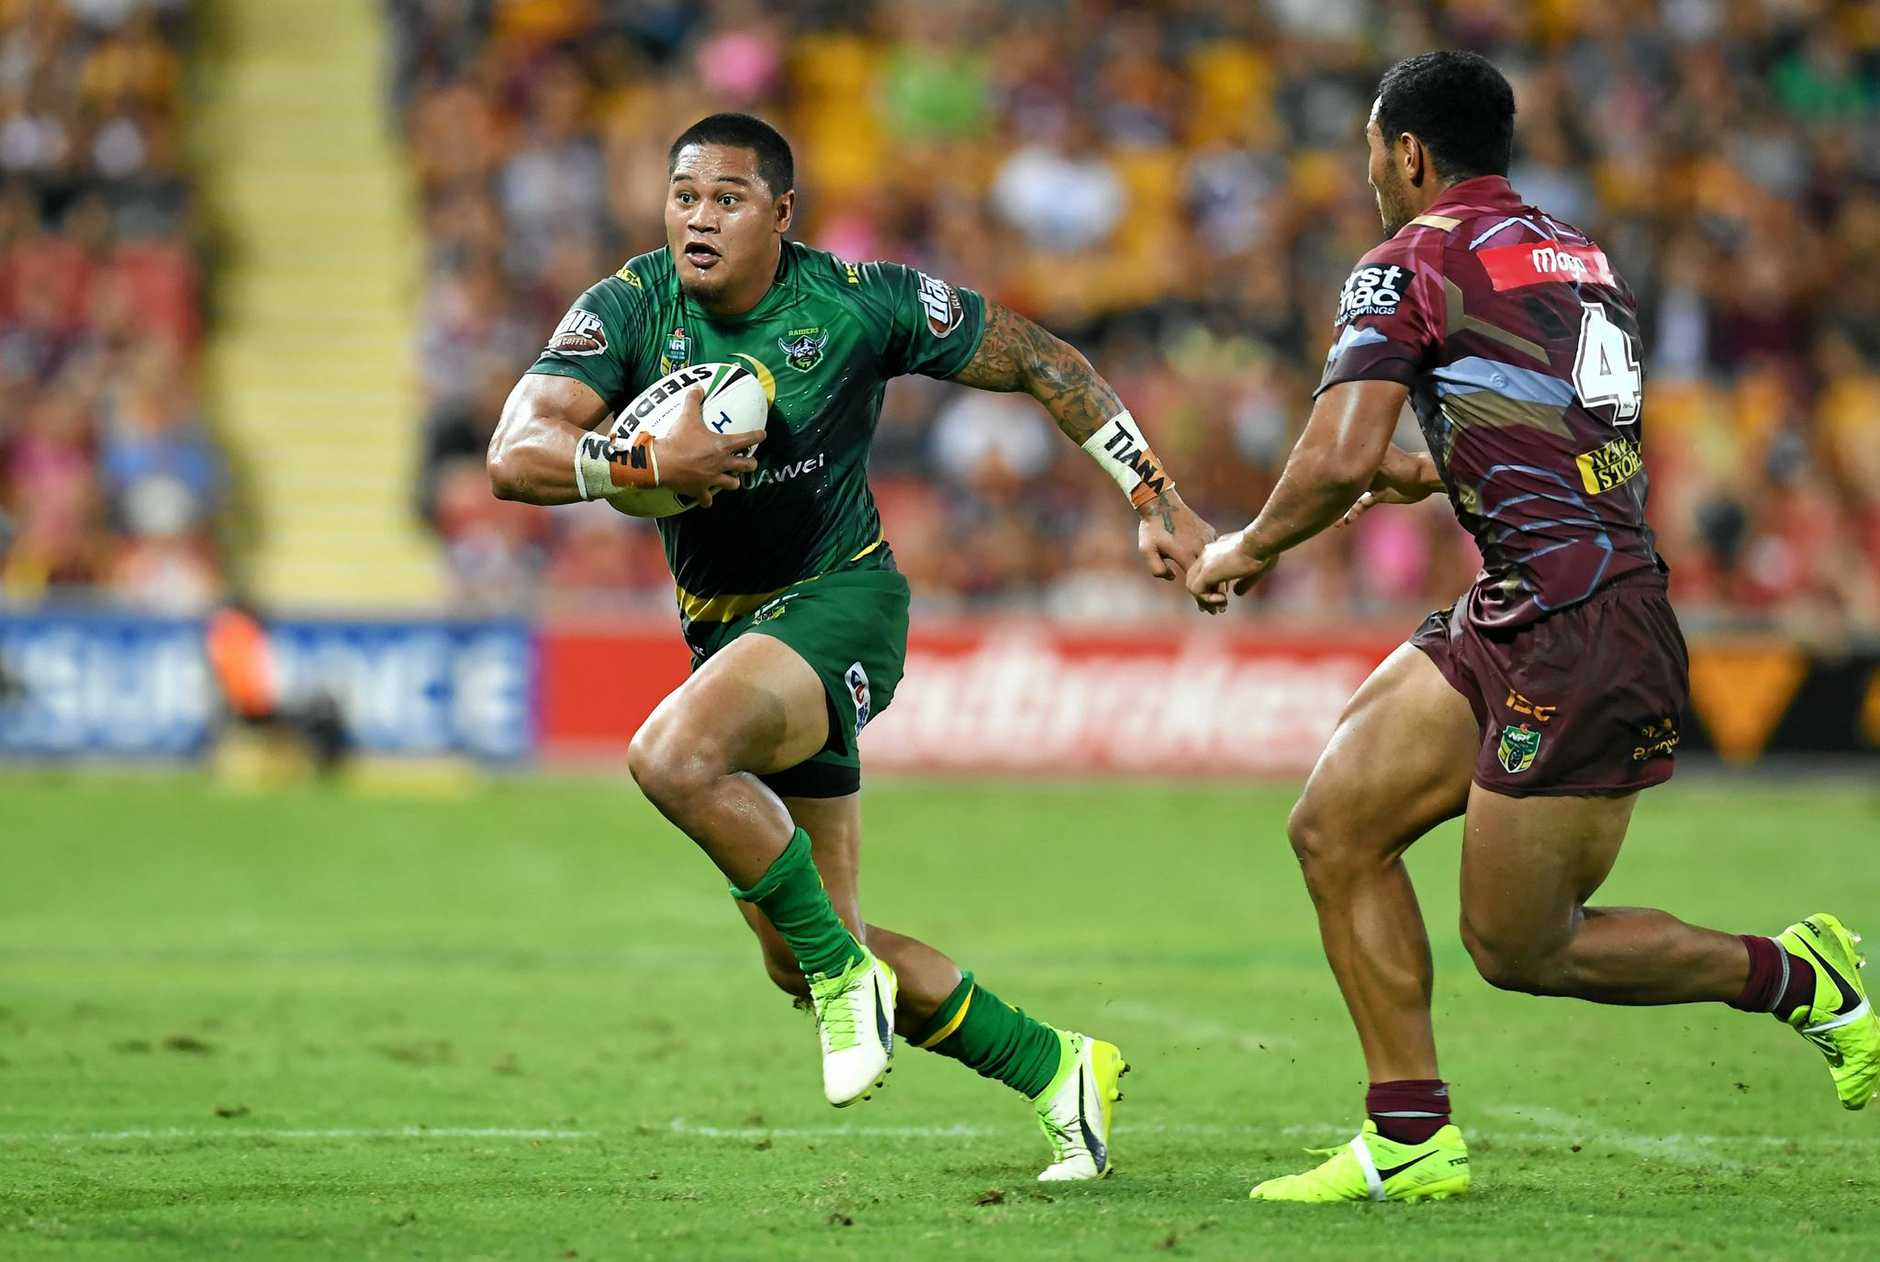 Joey Leilua of the Canberra Raiders (left) in action during their round 4 NRL game against the Brisbane Broncos at Suncorp Stadium in Brisbane, Friday, March 24, 2017. (AAP Image/Dan Peled) NO ARCHIVING, EDITORIAL USE ONLY